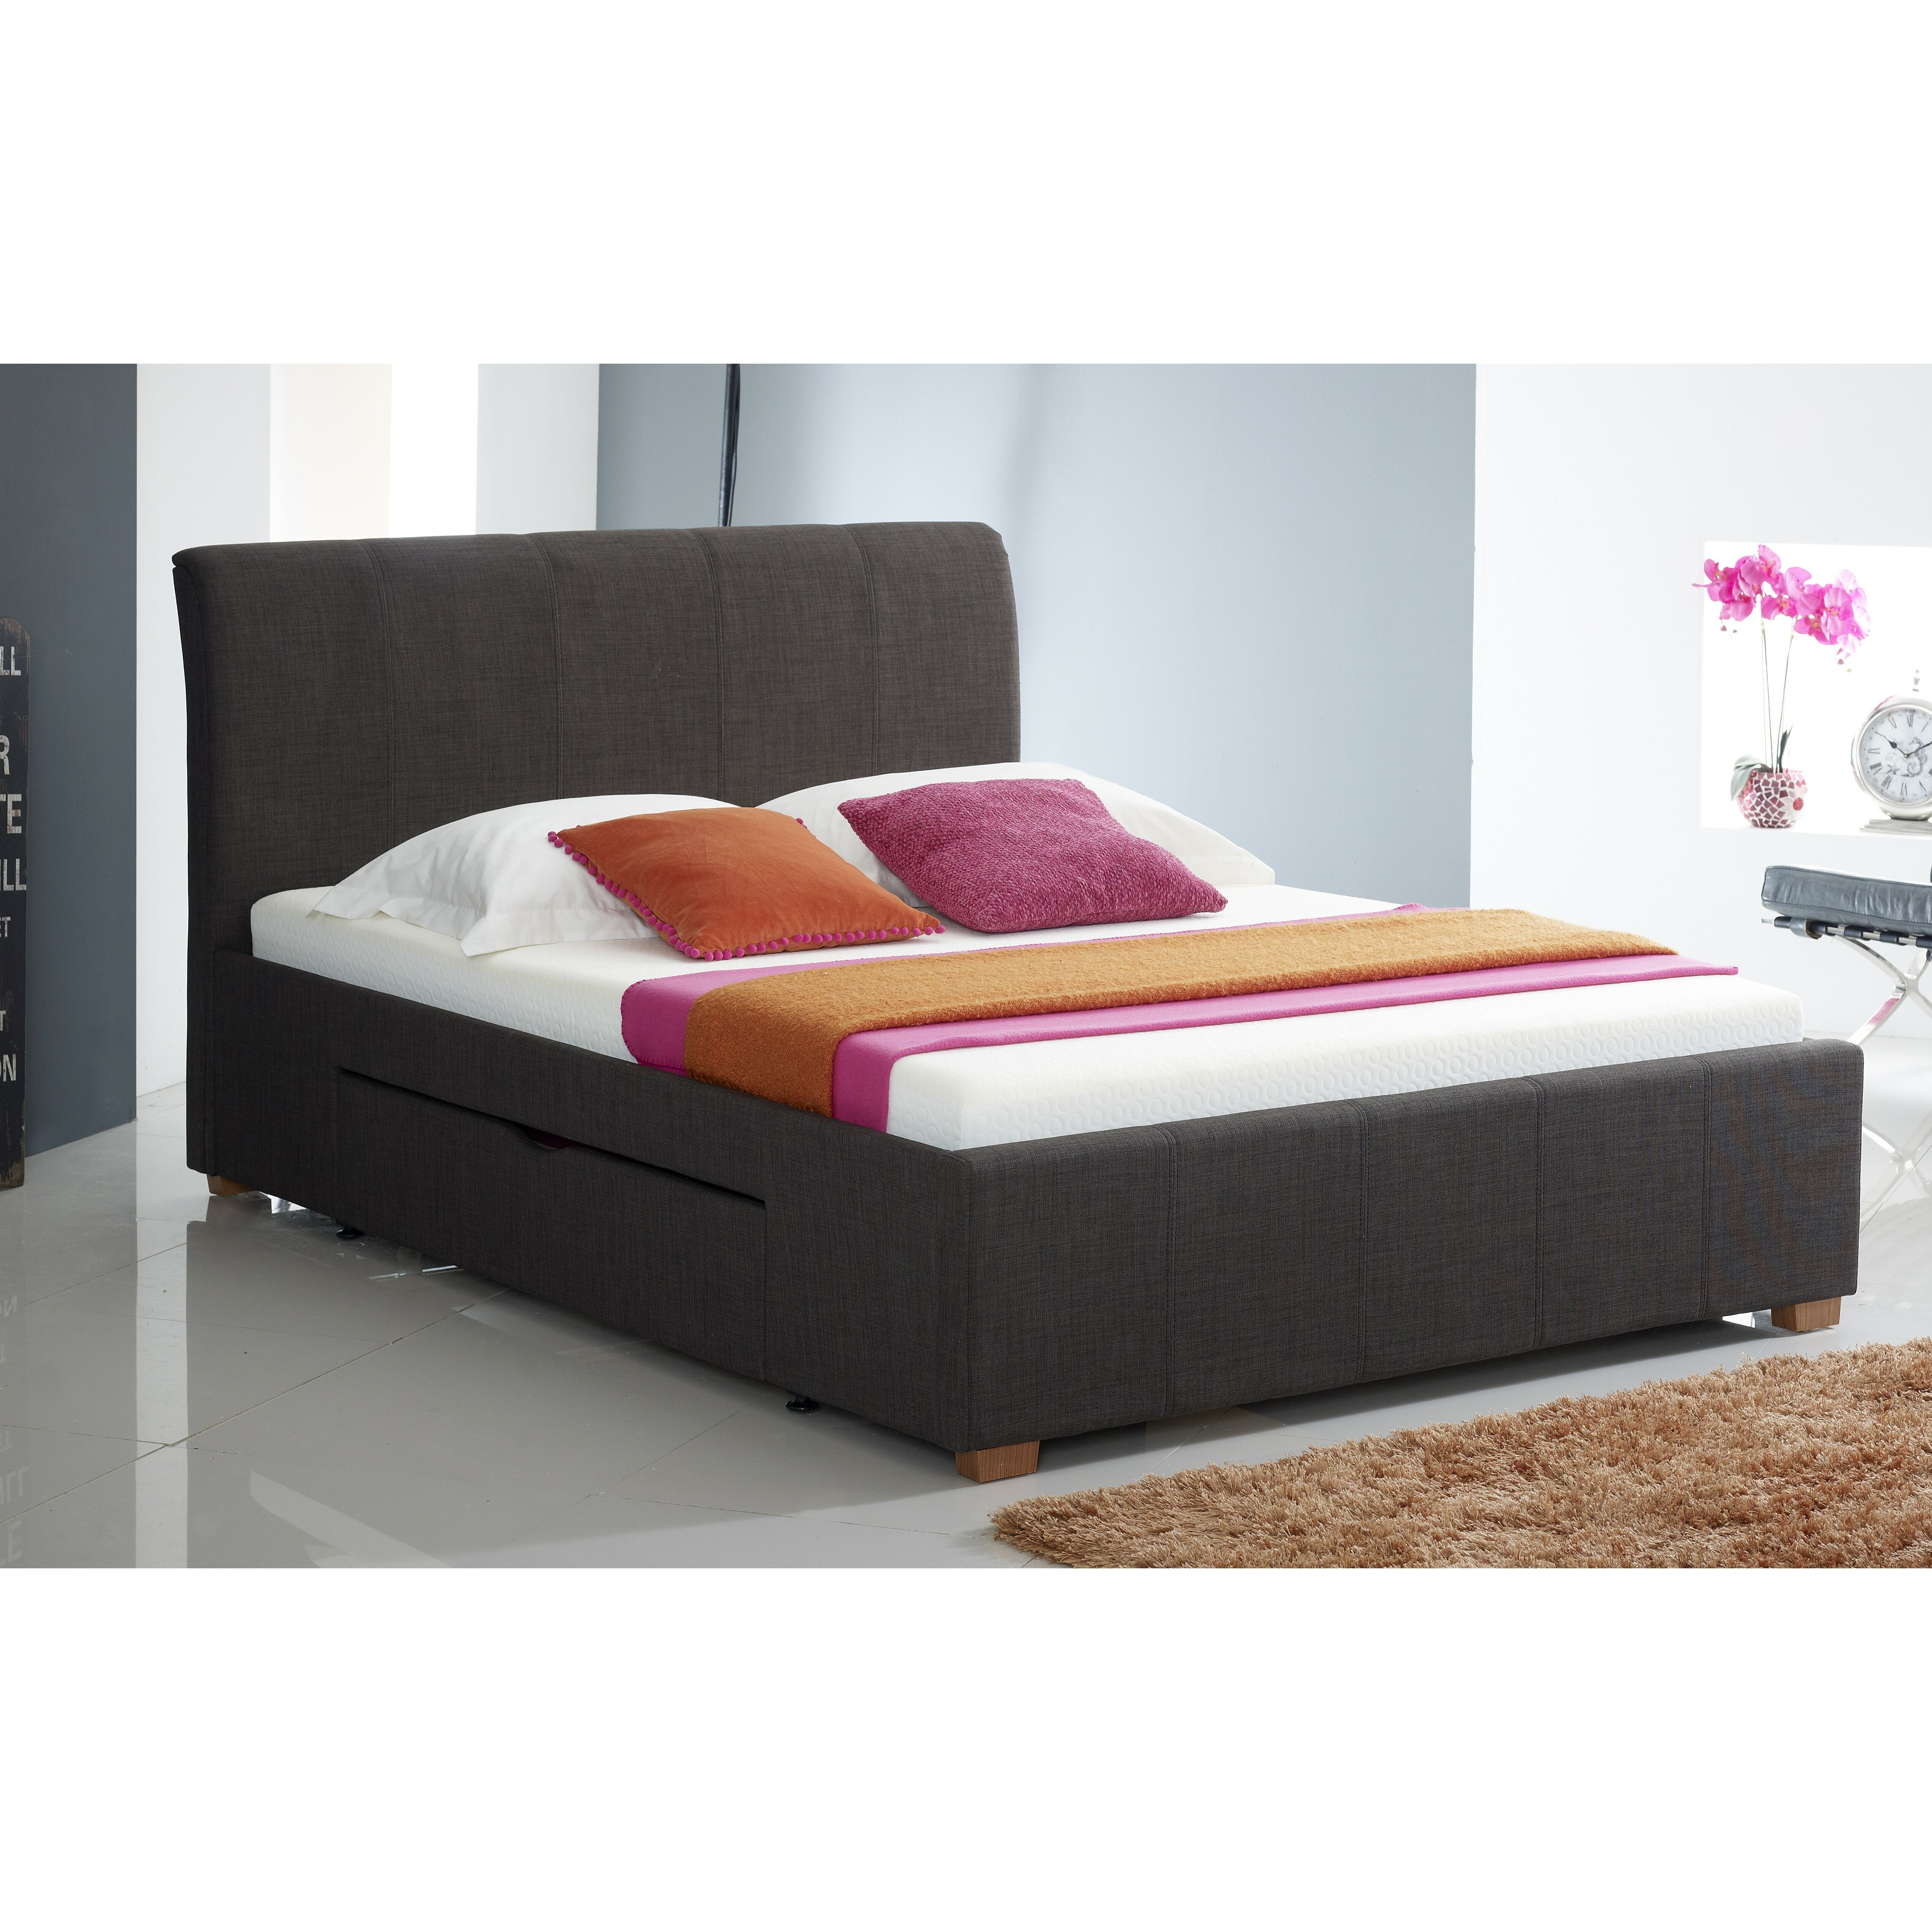 Home Haus Scarlett Upholstered Storage Bed Frame